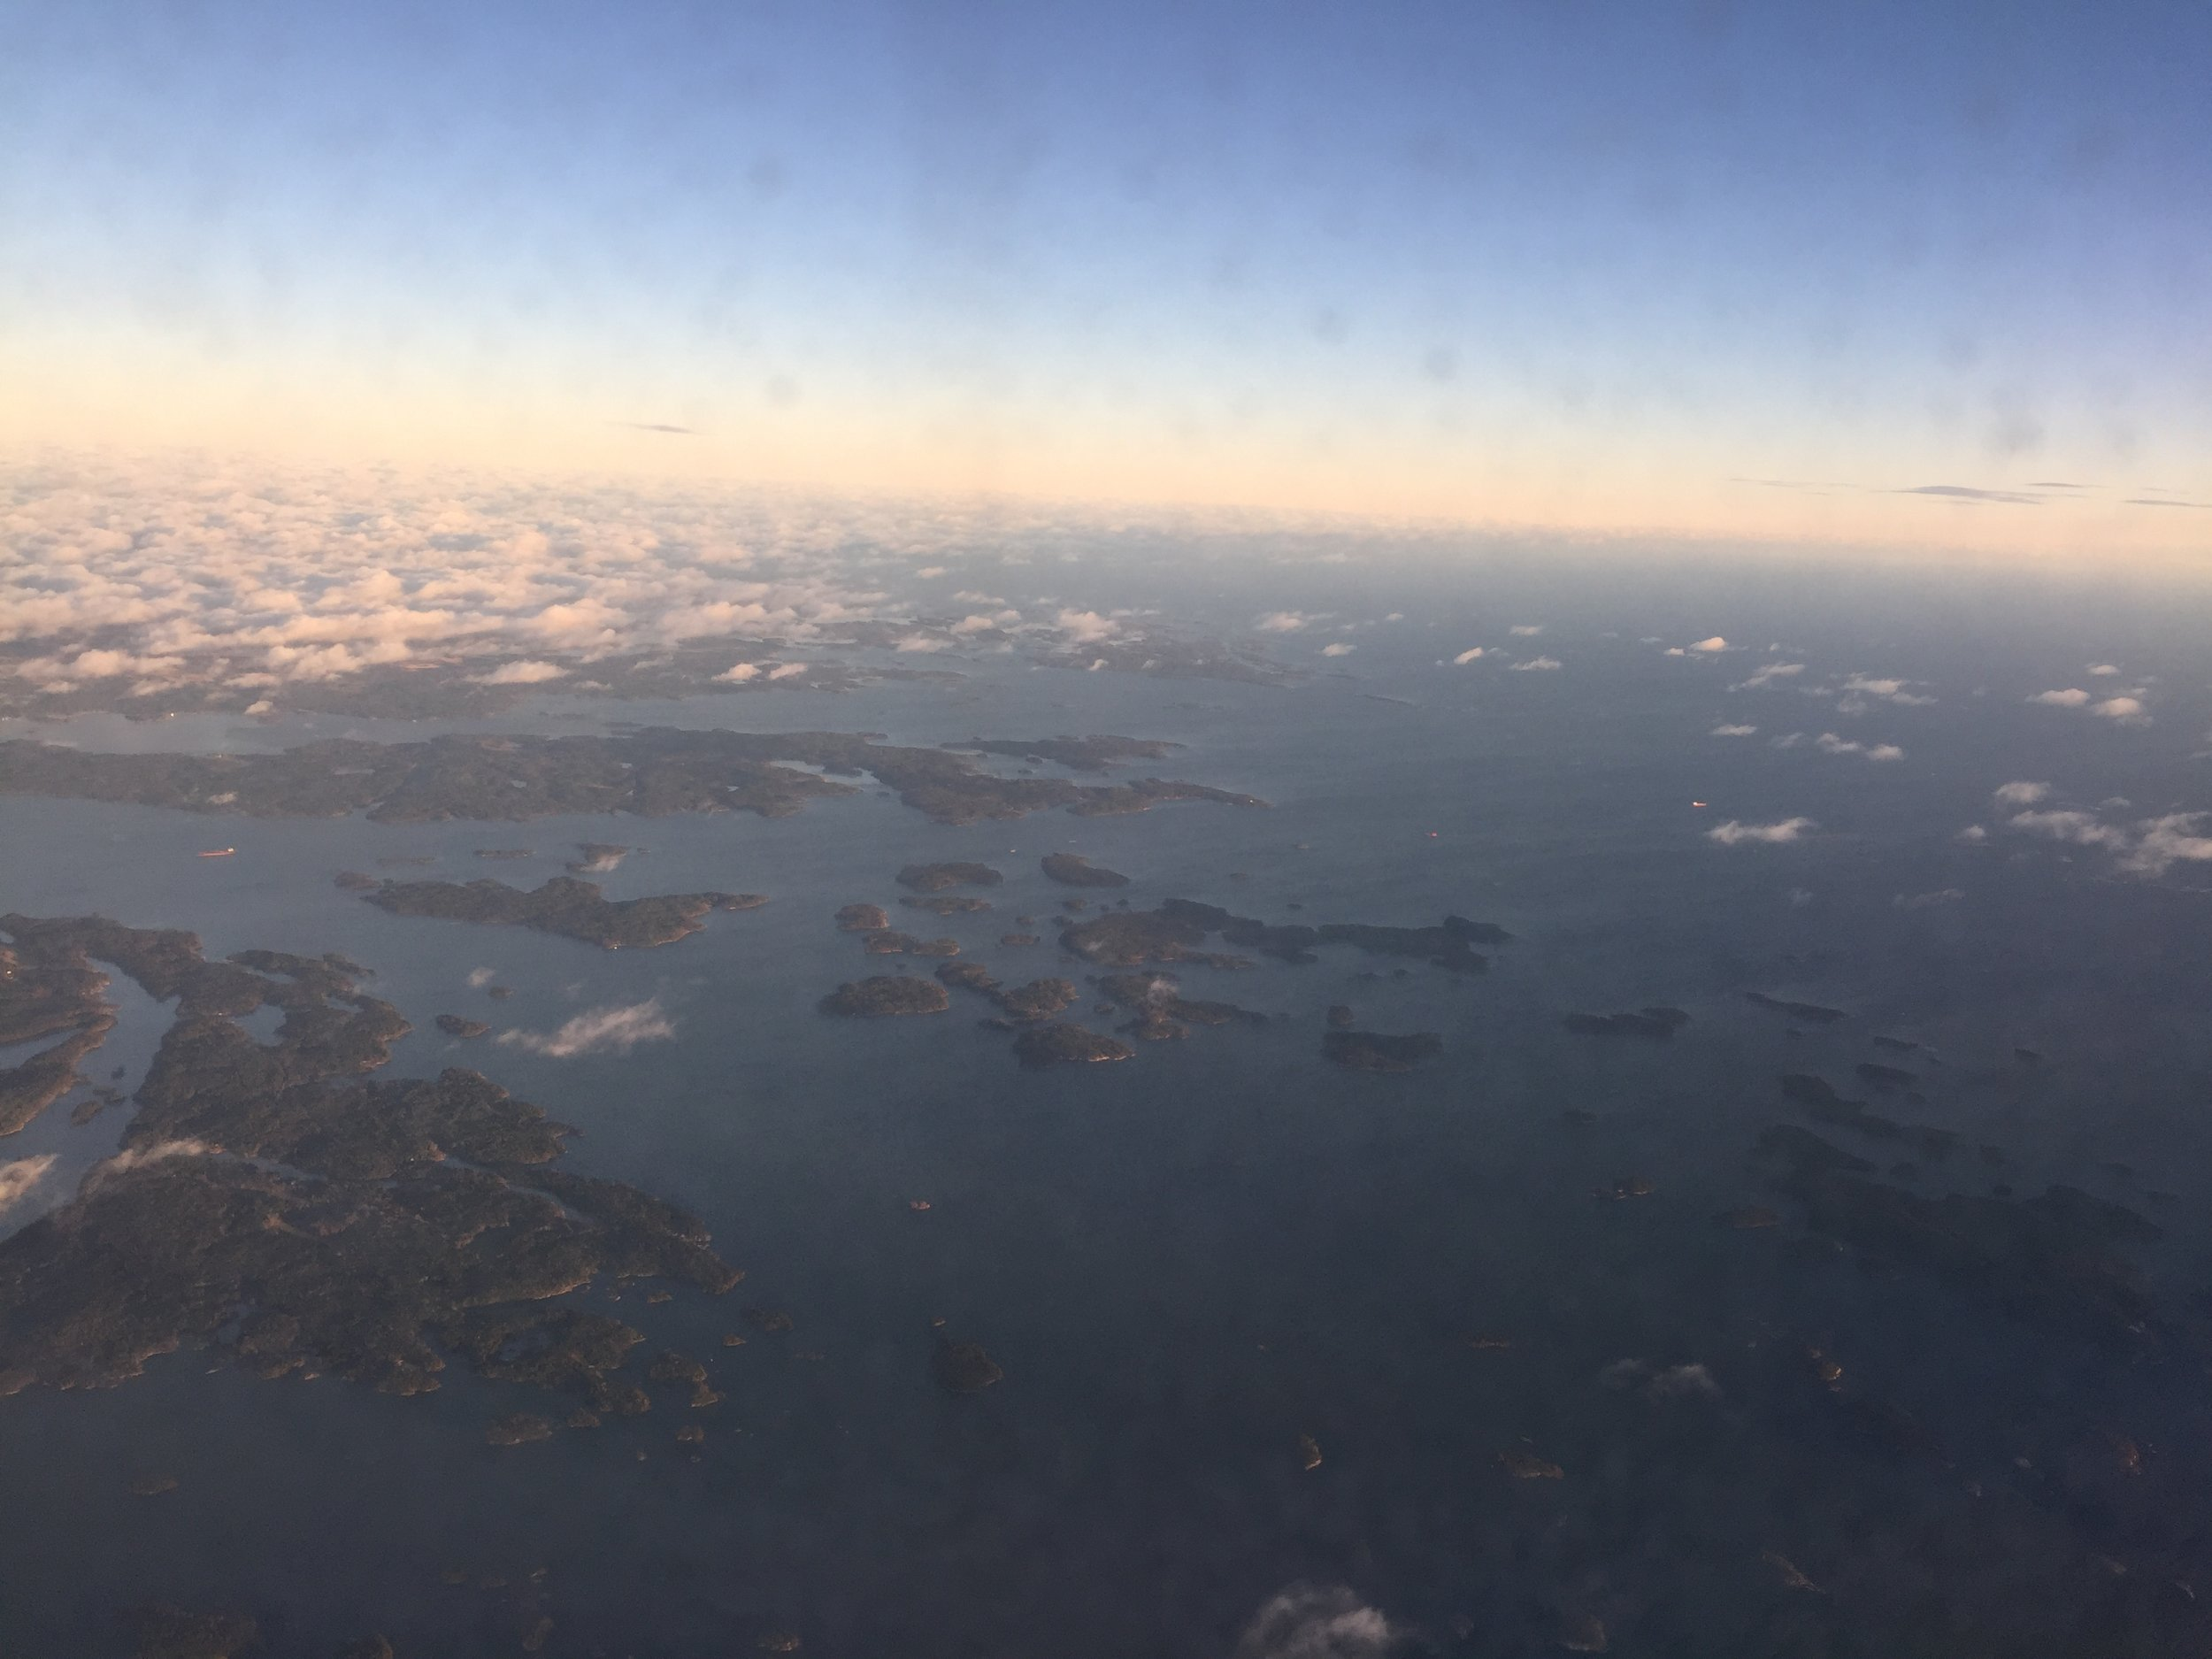 """In addition to great views, most landings at Helsinki airport are """"green landings"""""""